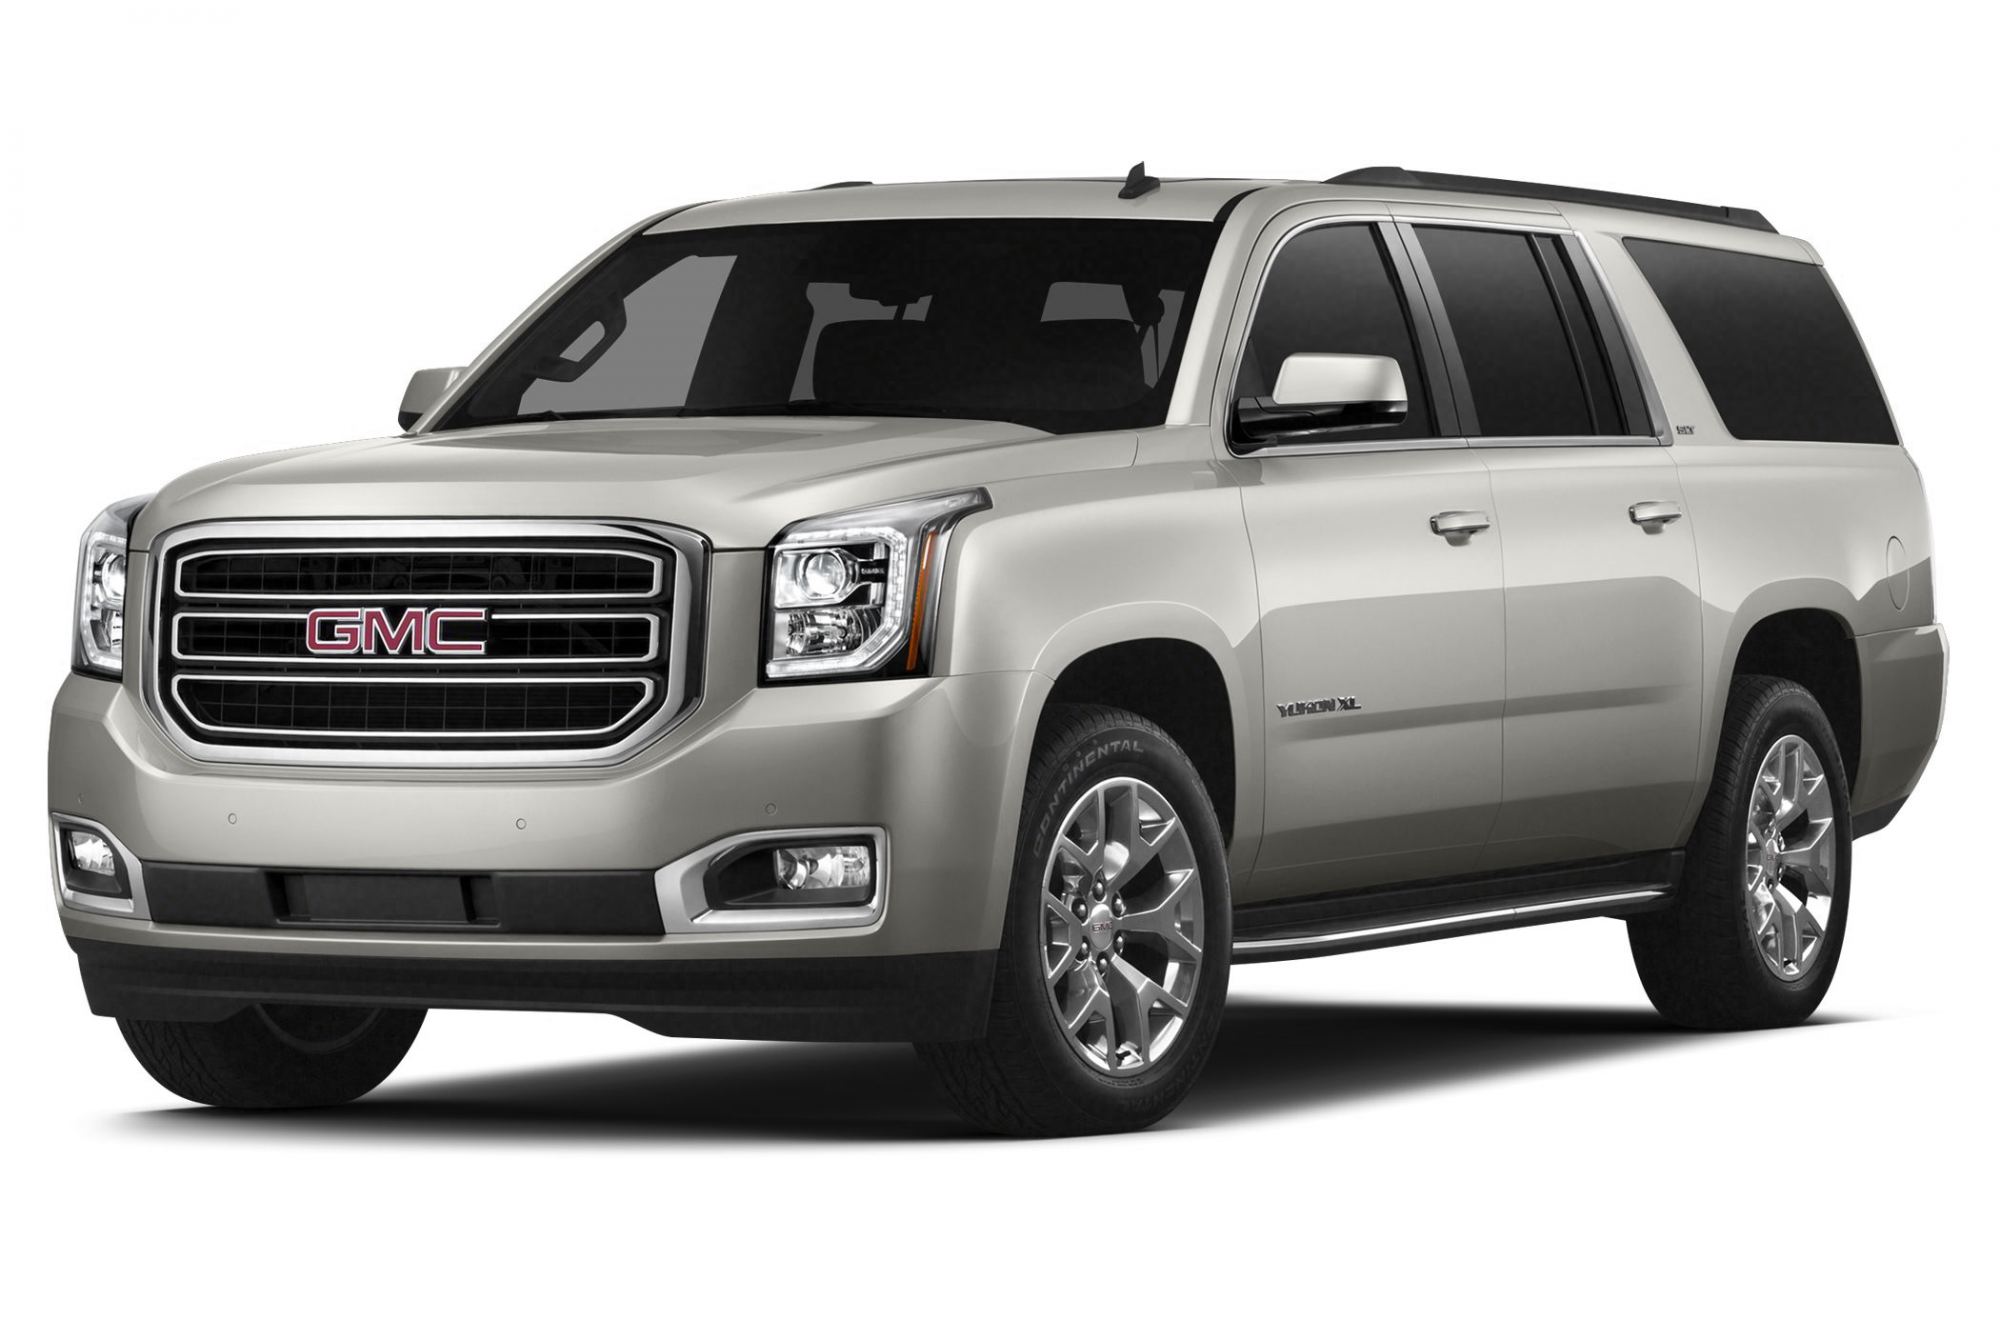 comparison gmc yukon xl denali 2017 vs gmc yukon xl 2016 suv drive. Black Bedroom Furniture Sets. Home Design Ideas